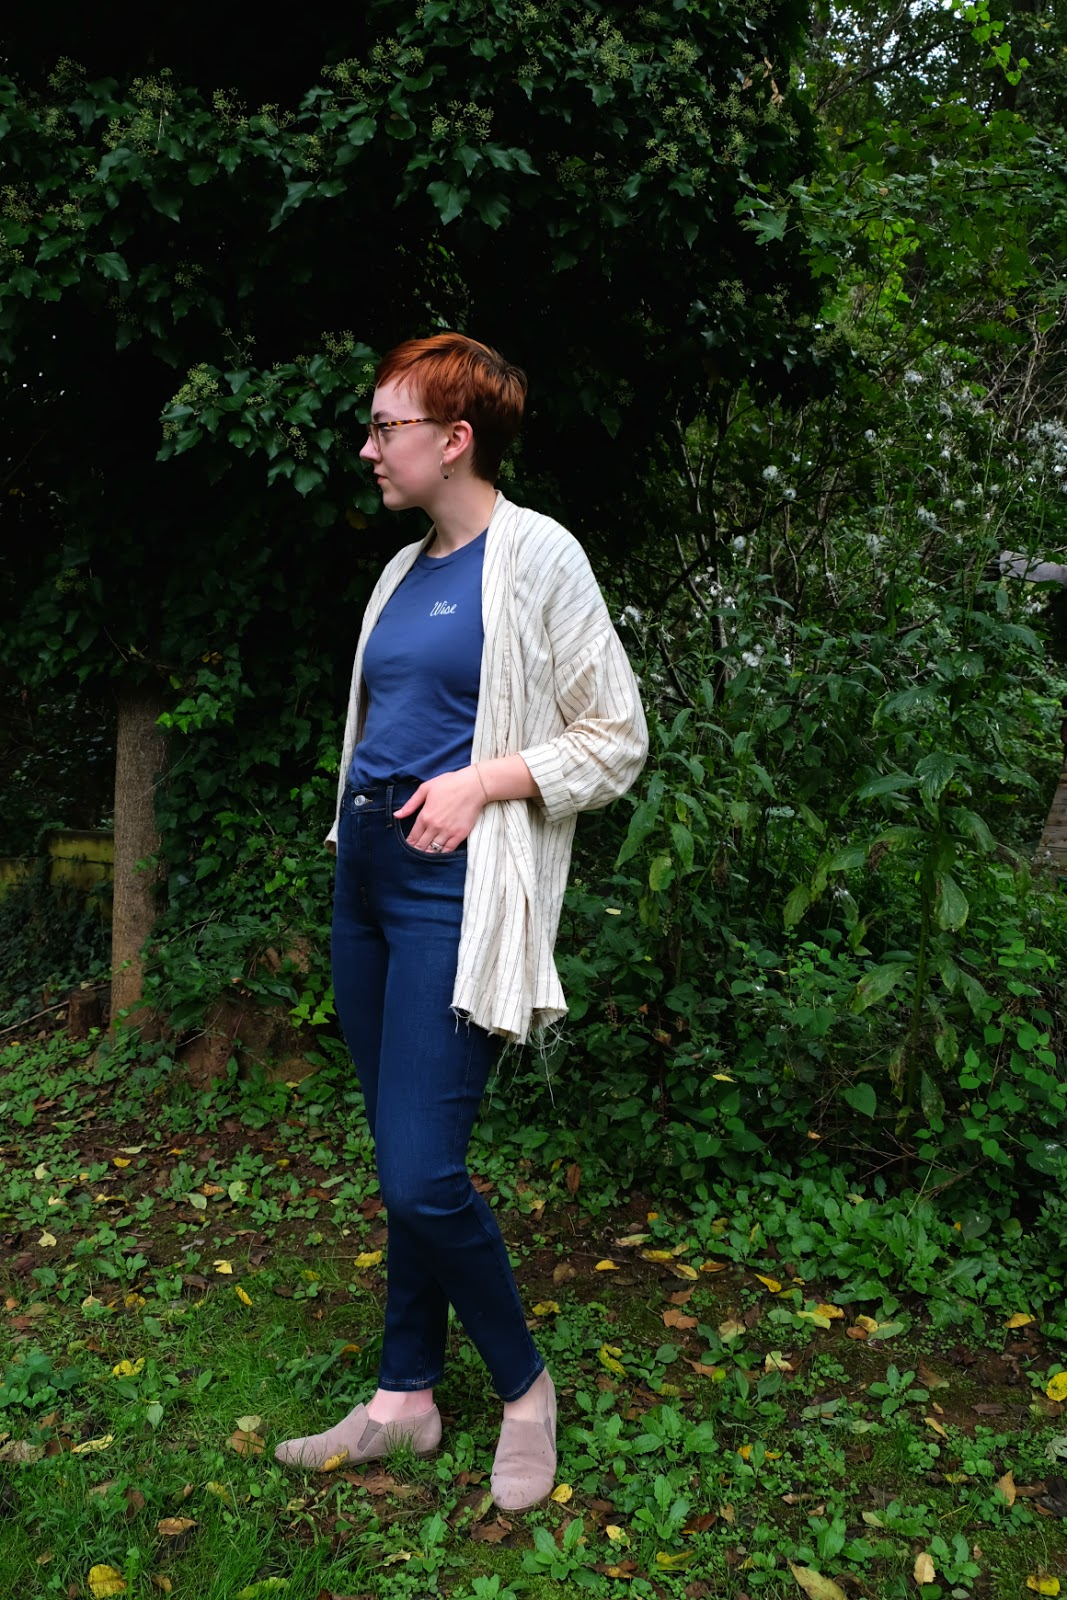 ethical style classics featuring sela designs stylewise-blog.com